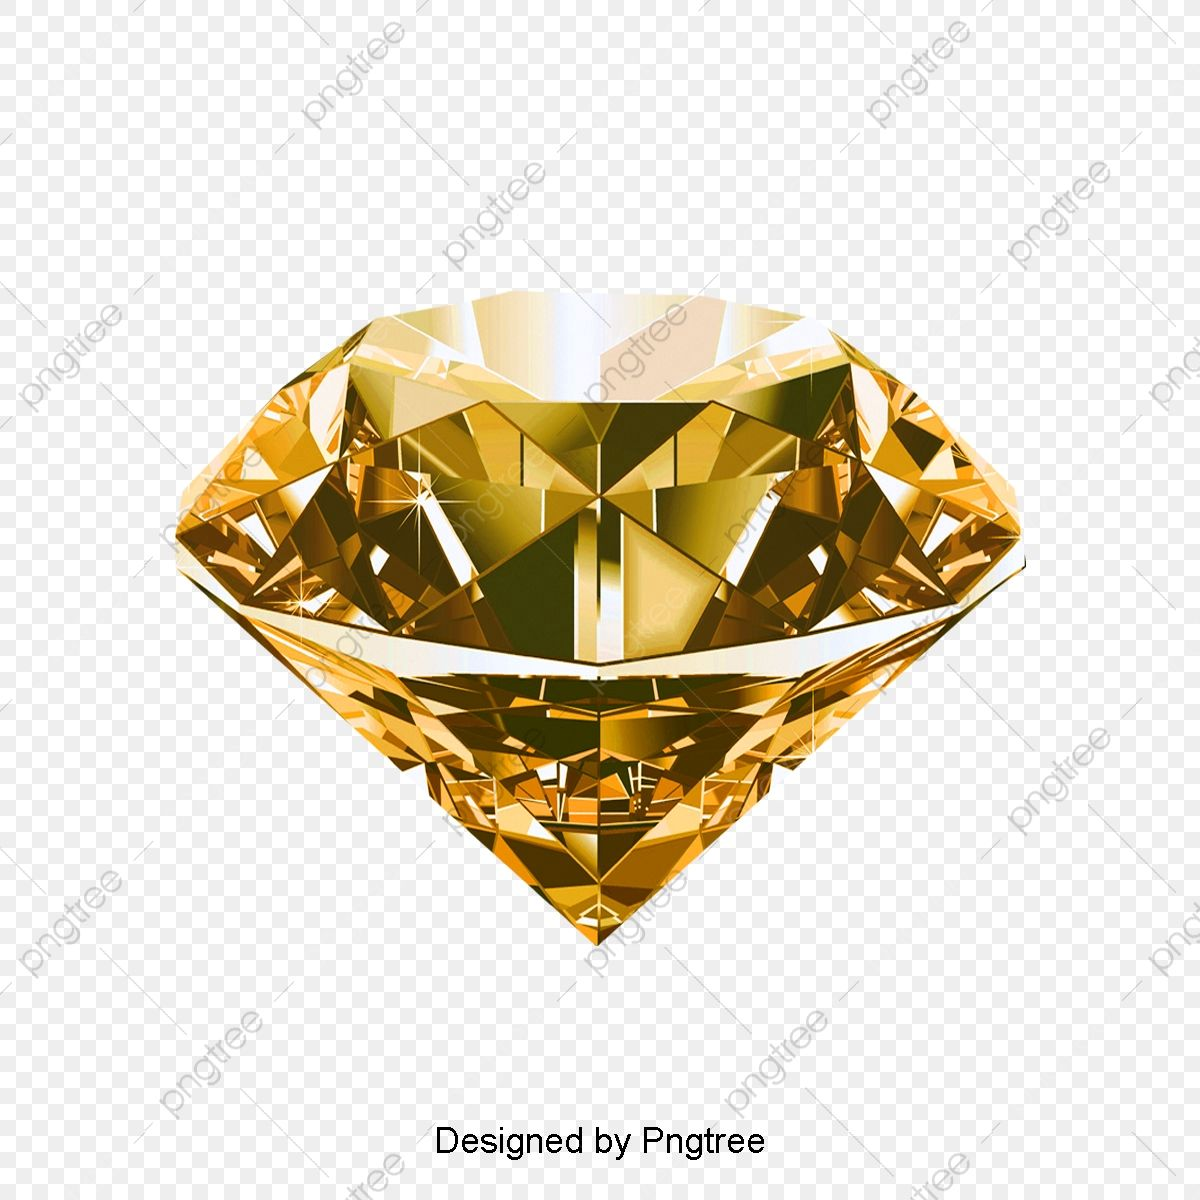 Diamond Gold Crystal Png Transparent Clipart Image And Psd File For Free Download Diamond Image Diamond Crystals